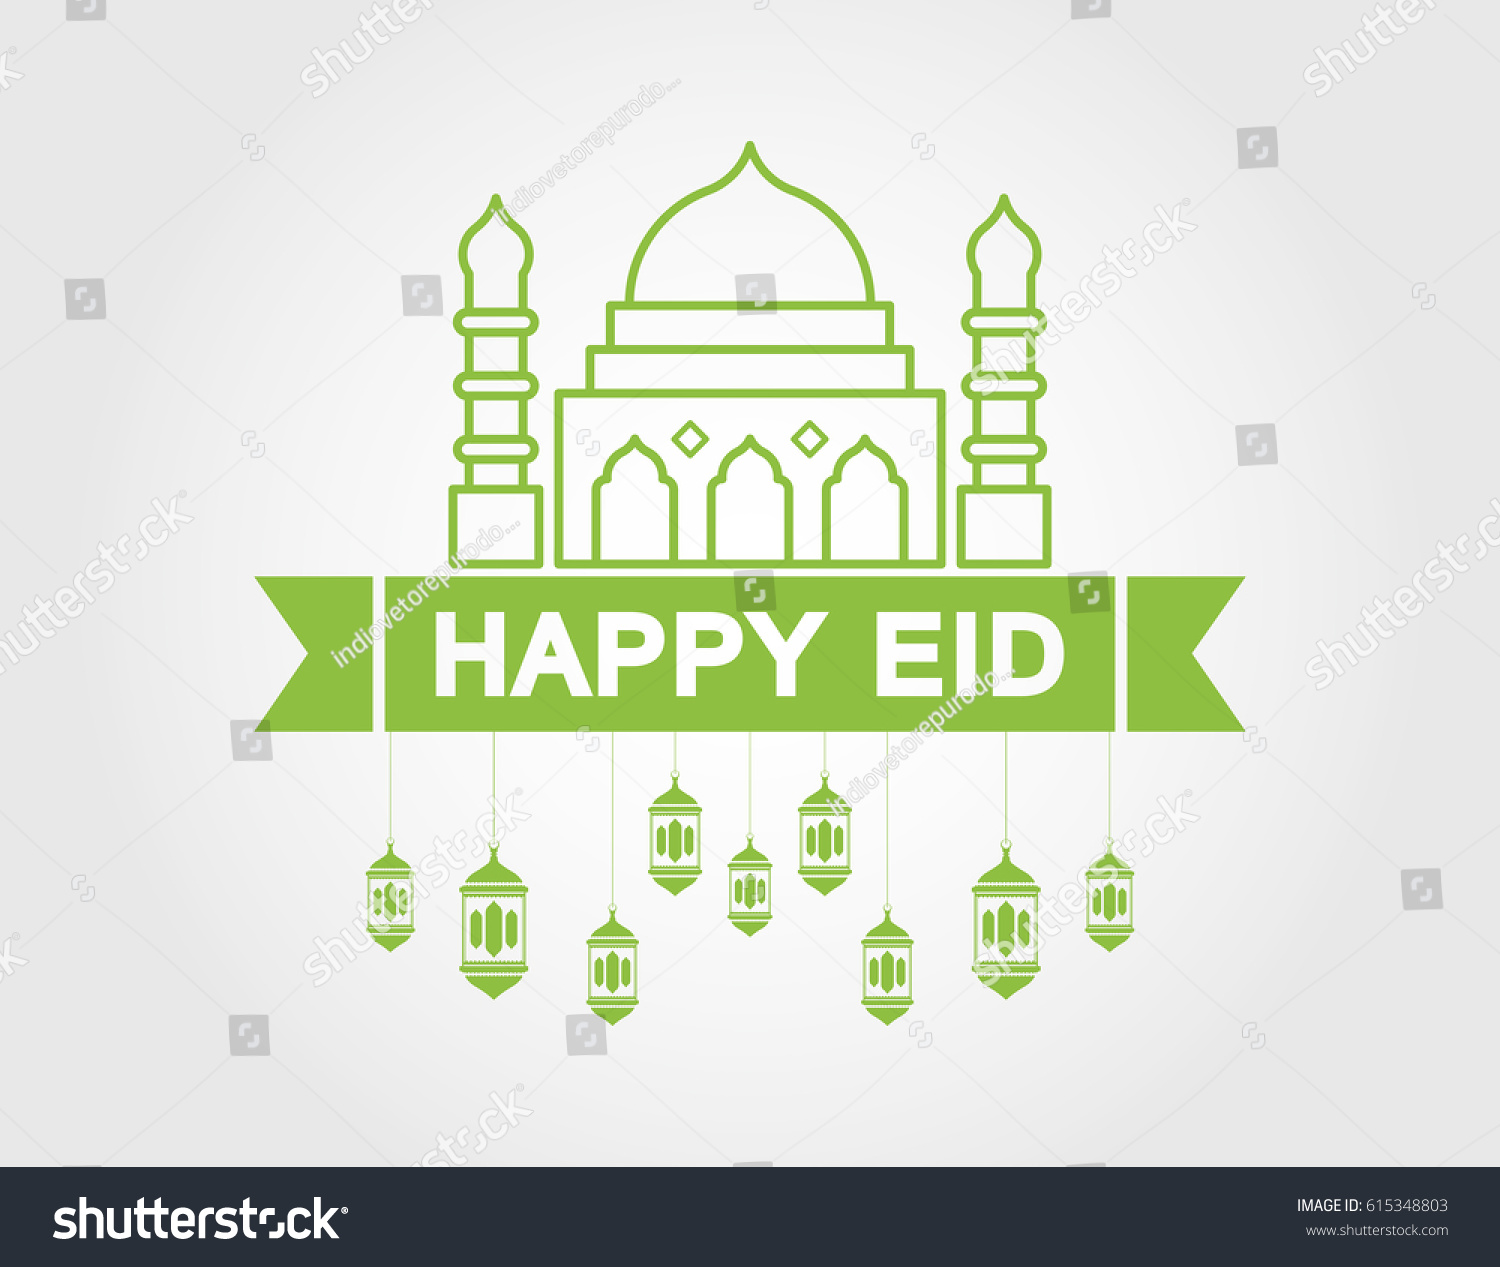 Happy eid greeting card stock illustration 615348803 shutterstock happy eid greeting card kristyandbryce Choice Image